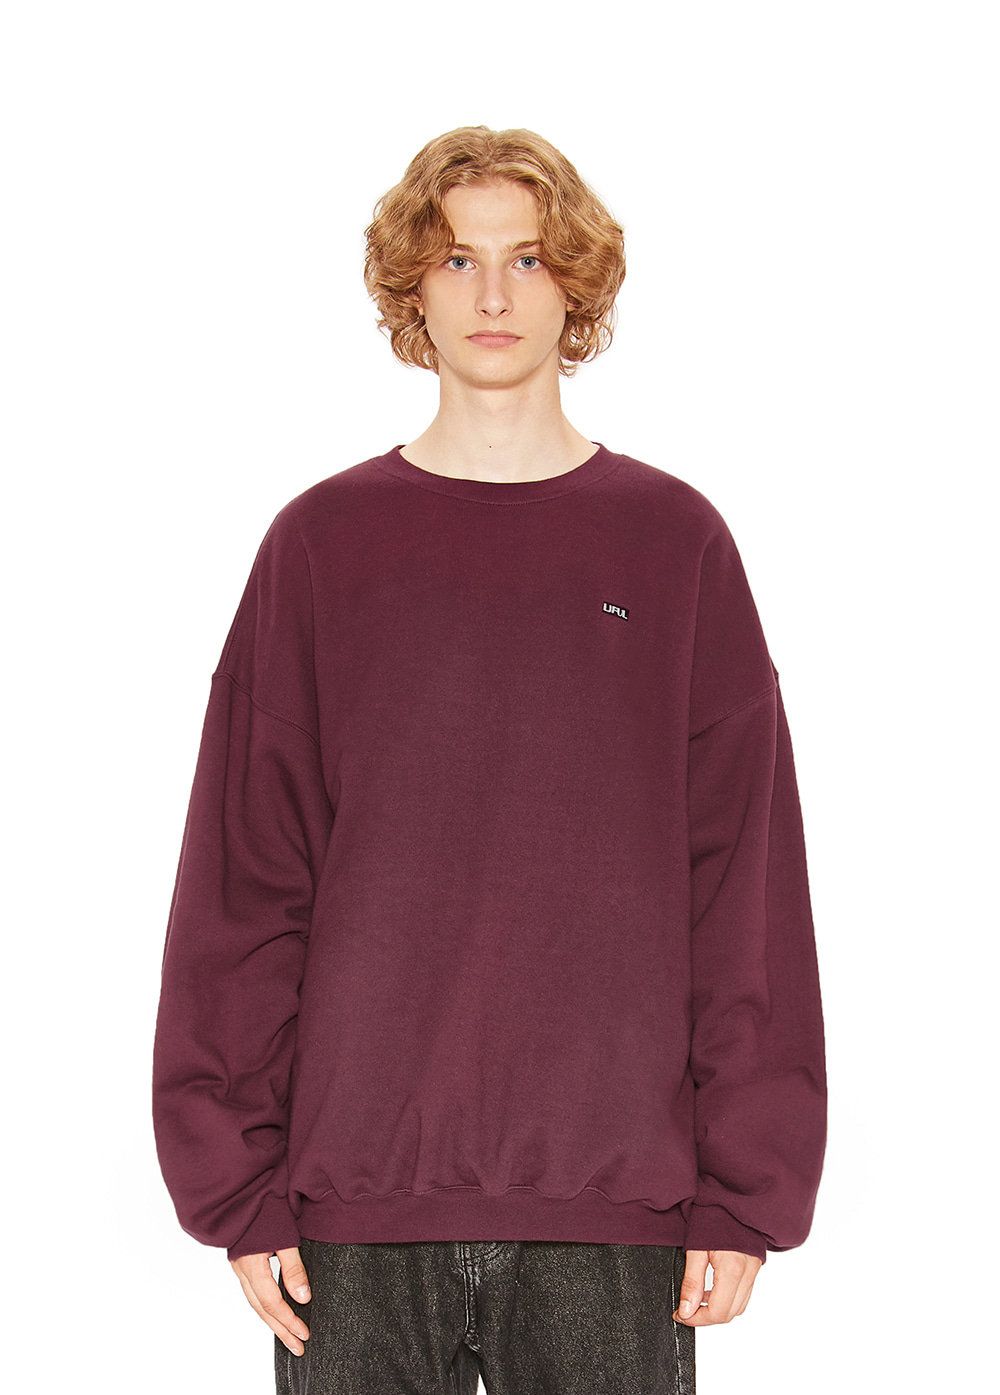 LIFUL BOX LOGO SWEATSHIRT burgundy